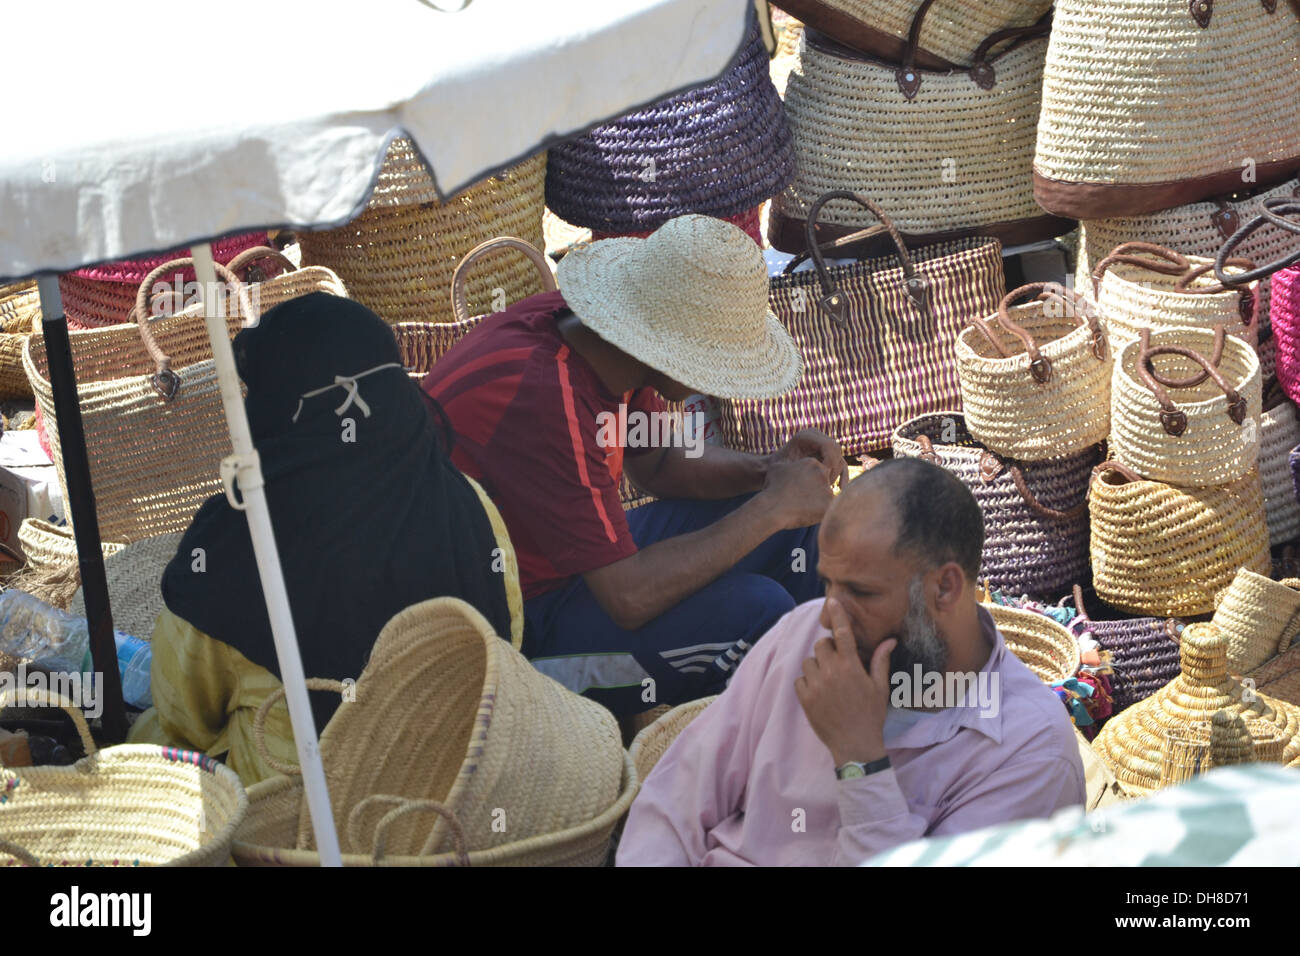 Men selling baskets and weaving works in Marrakech, Morocco. - Stock Image